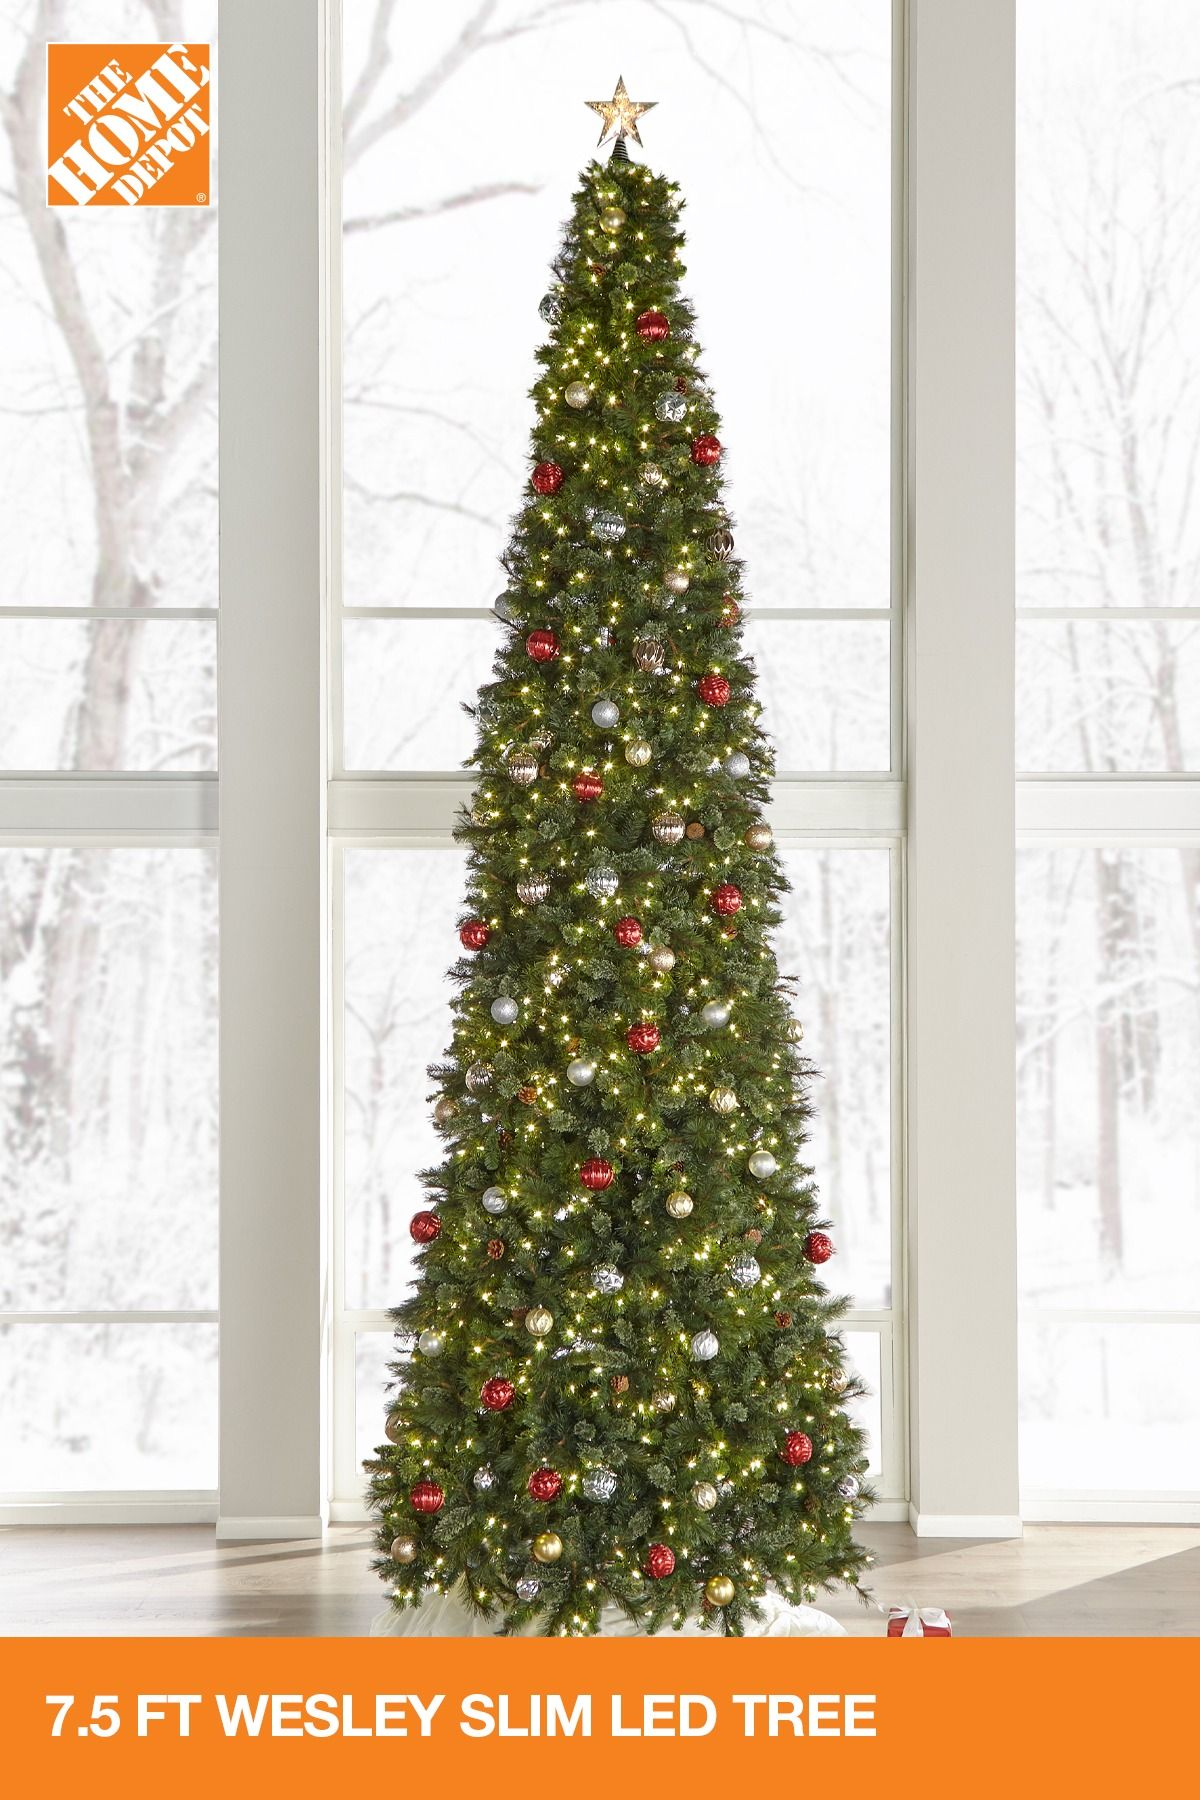 Christmas Is The Most Wonderful Time Of The Year And The Home